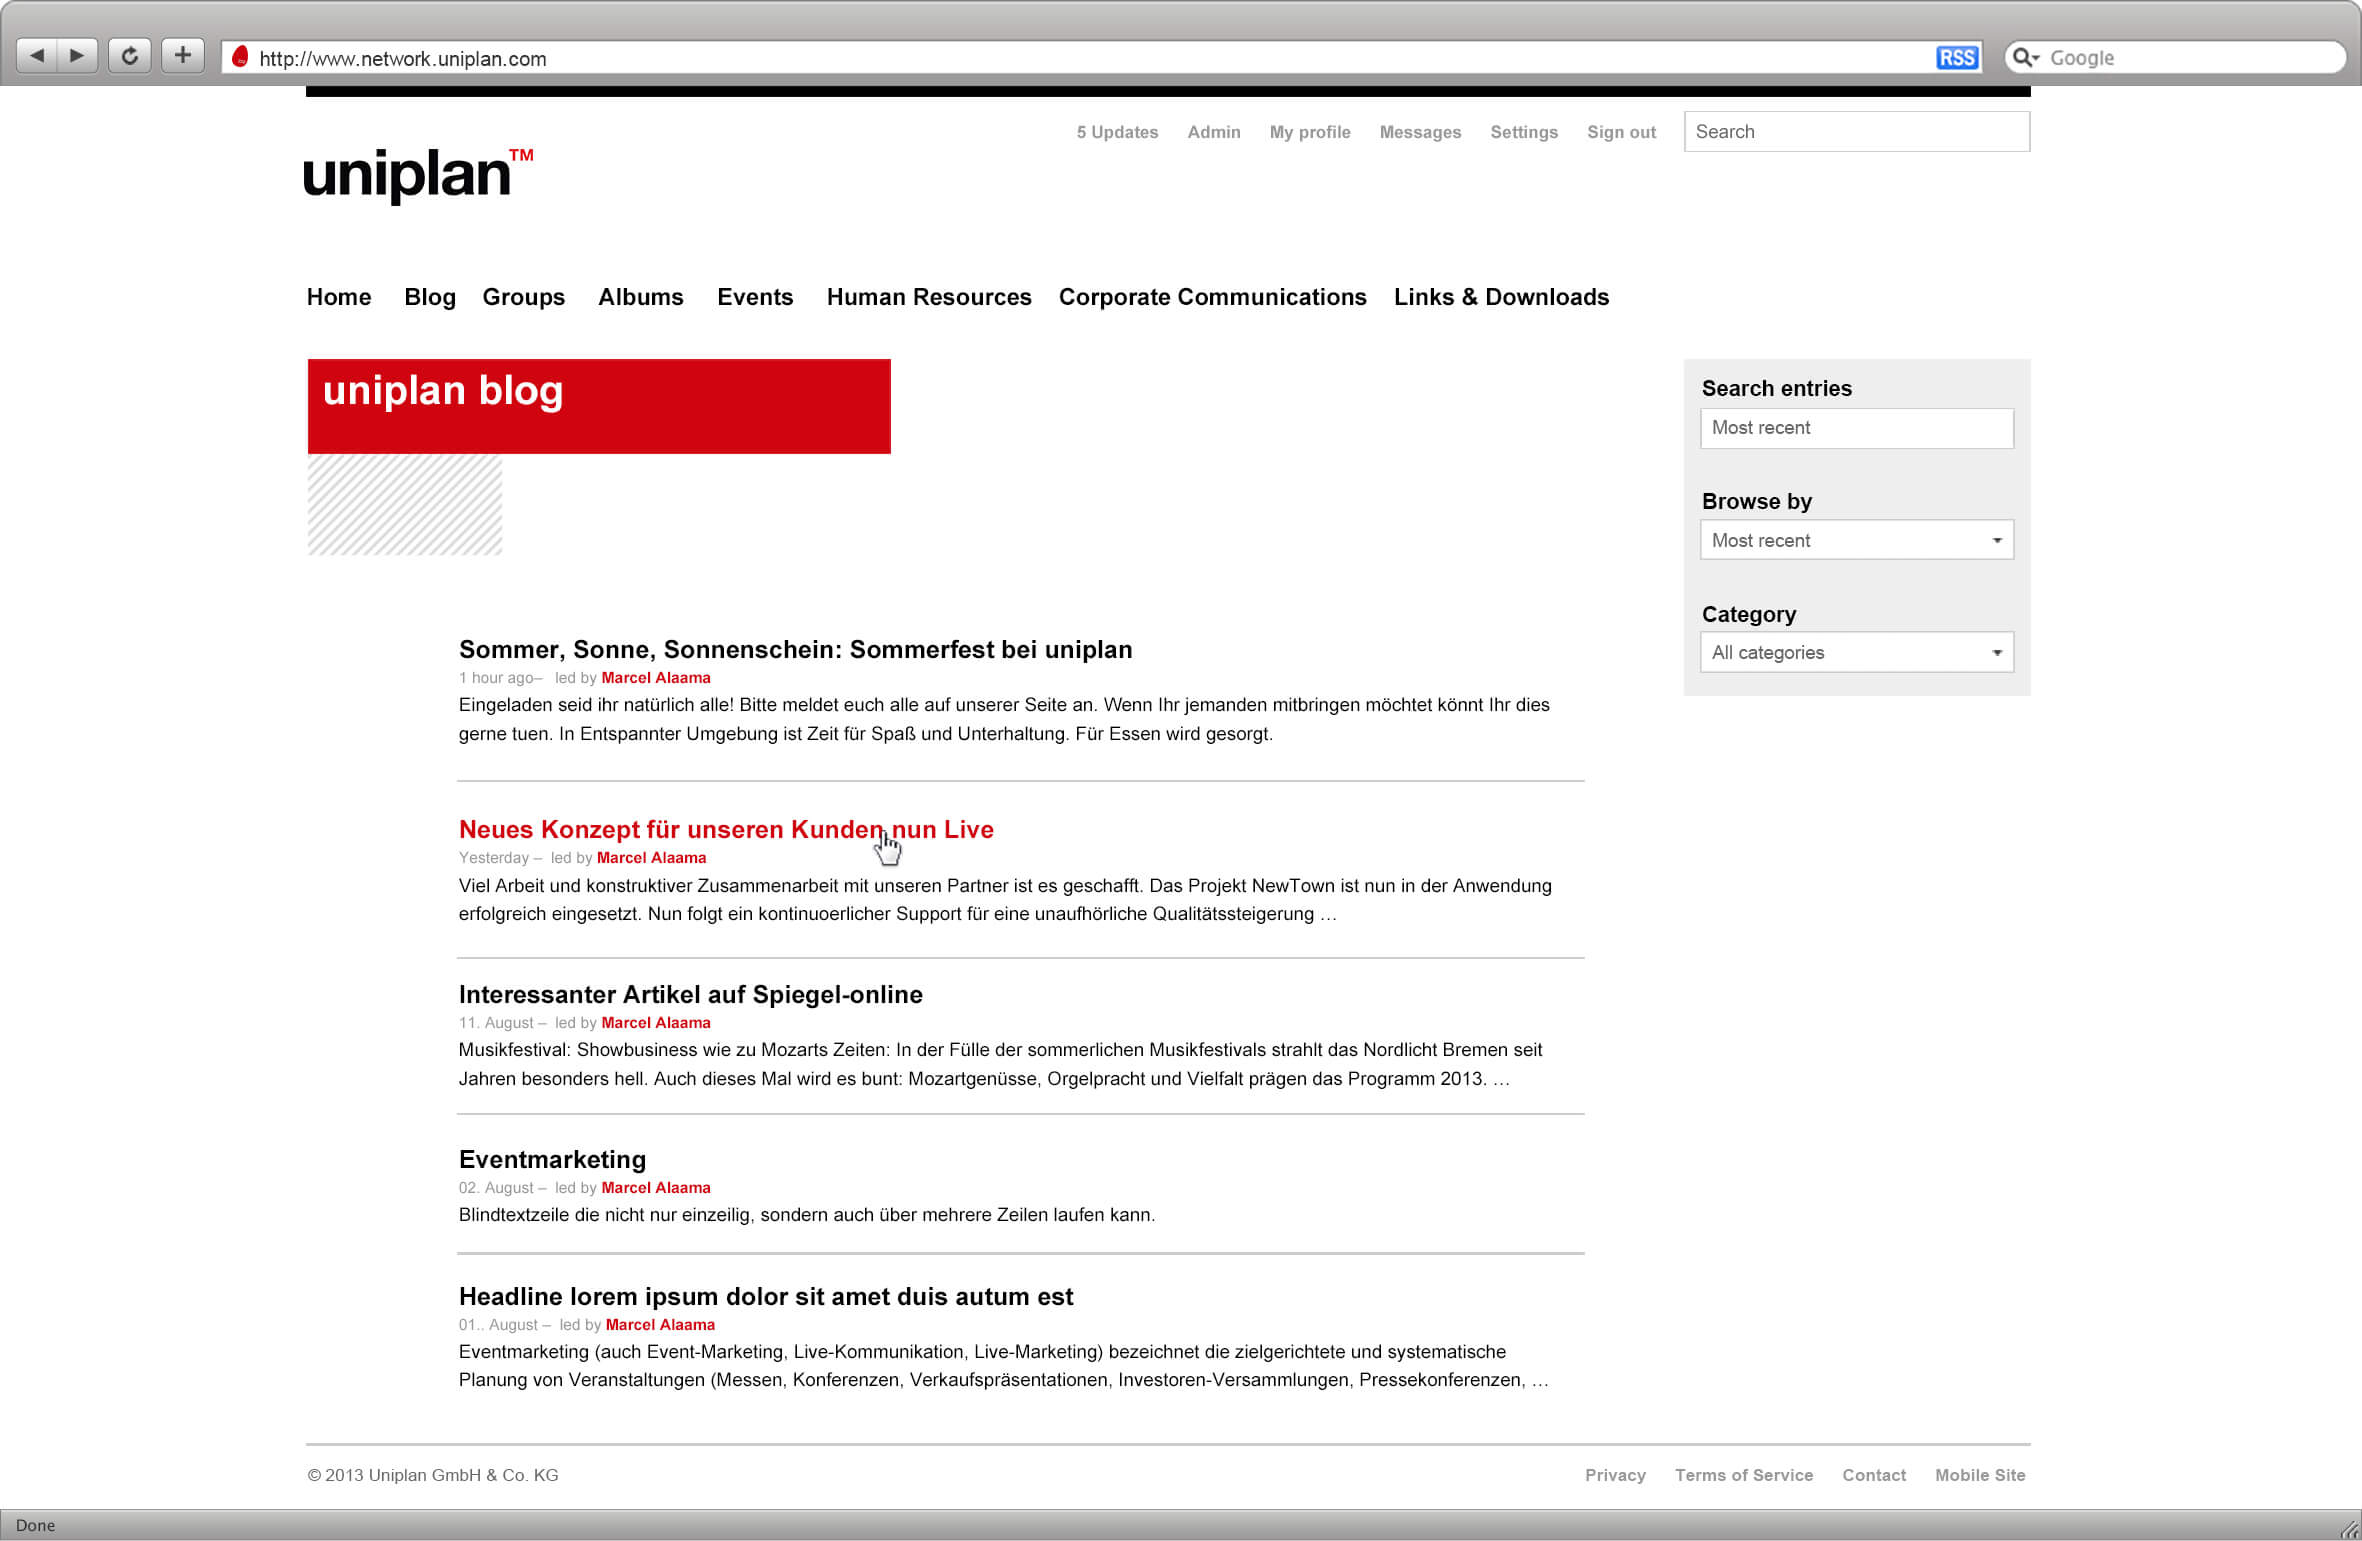 Uniplan Blog on the Intranet